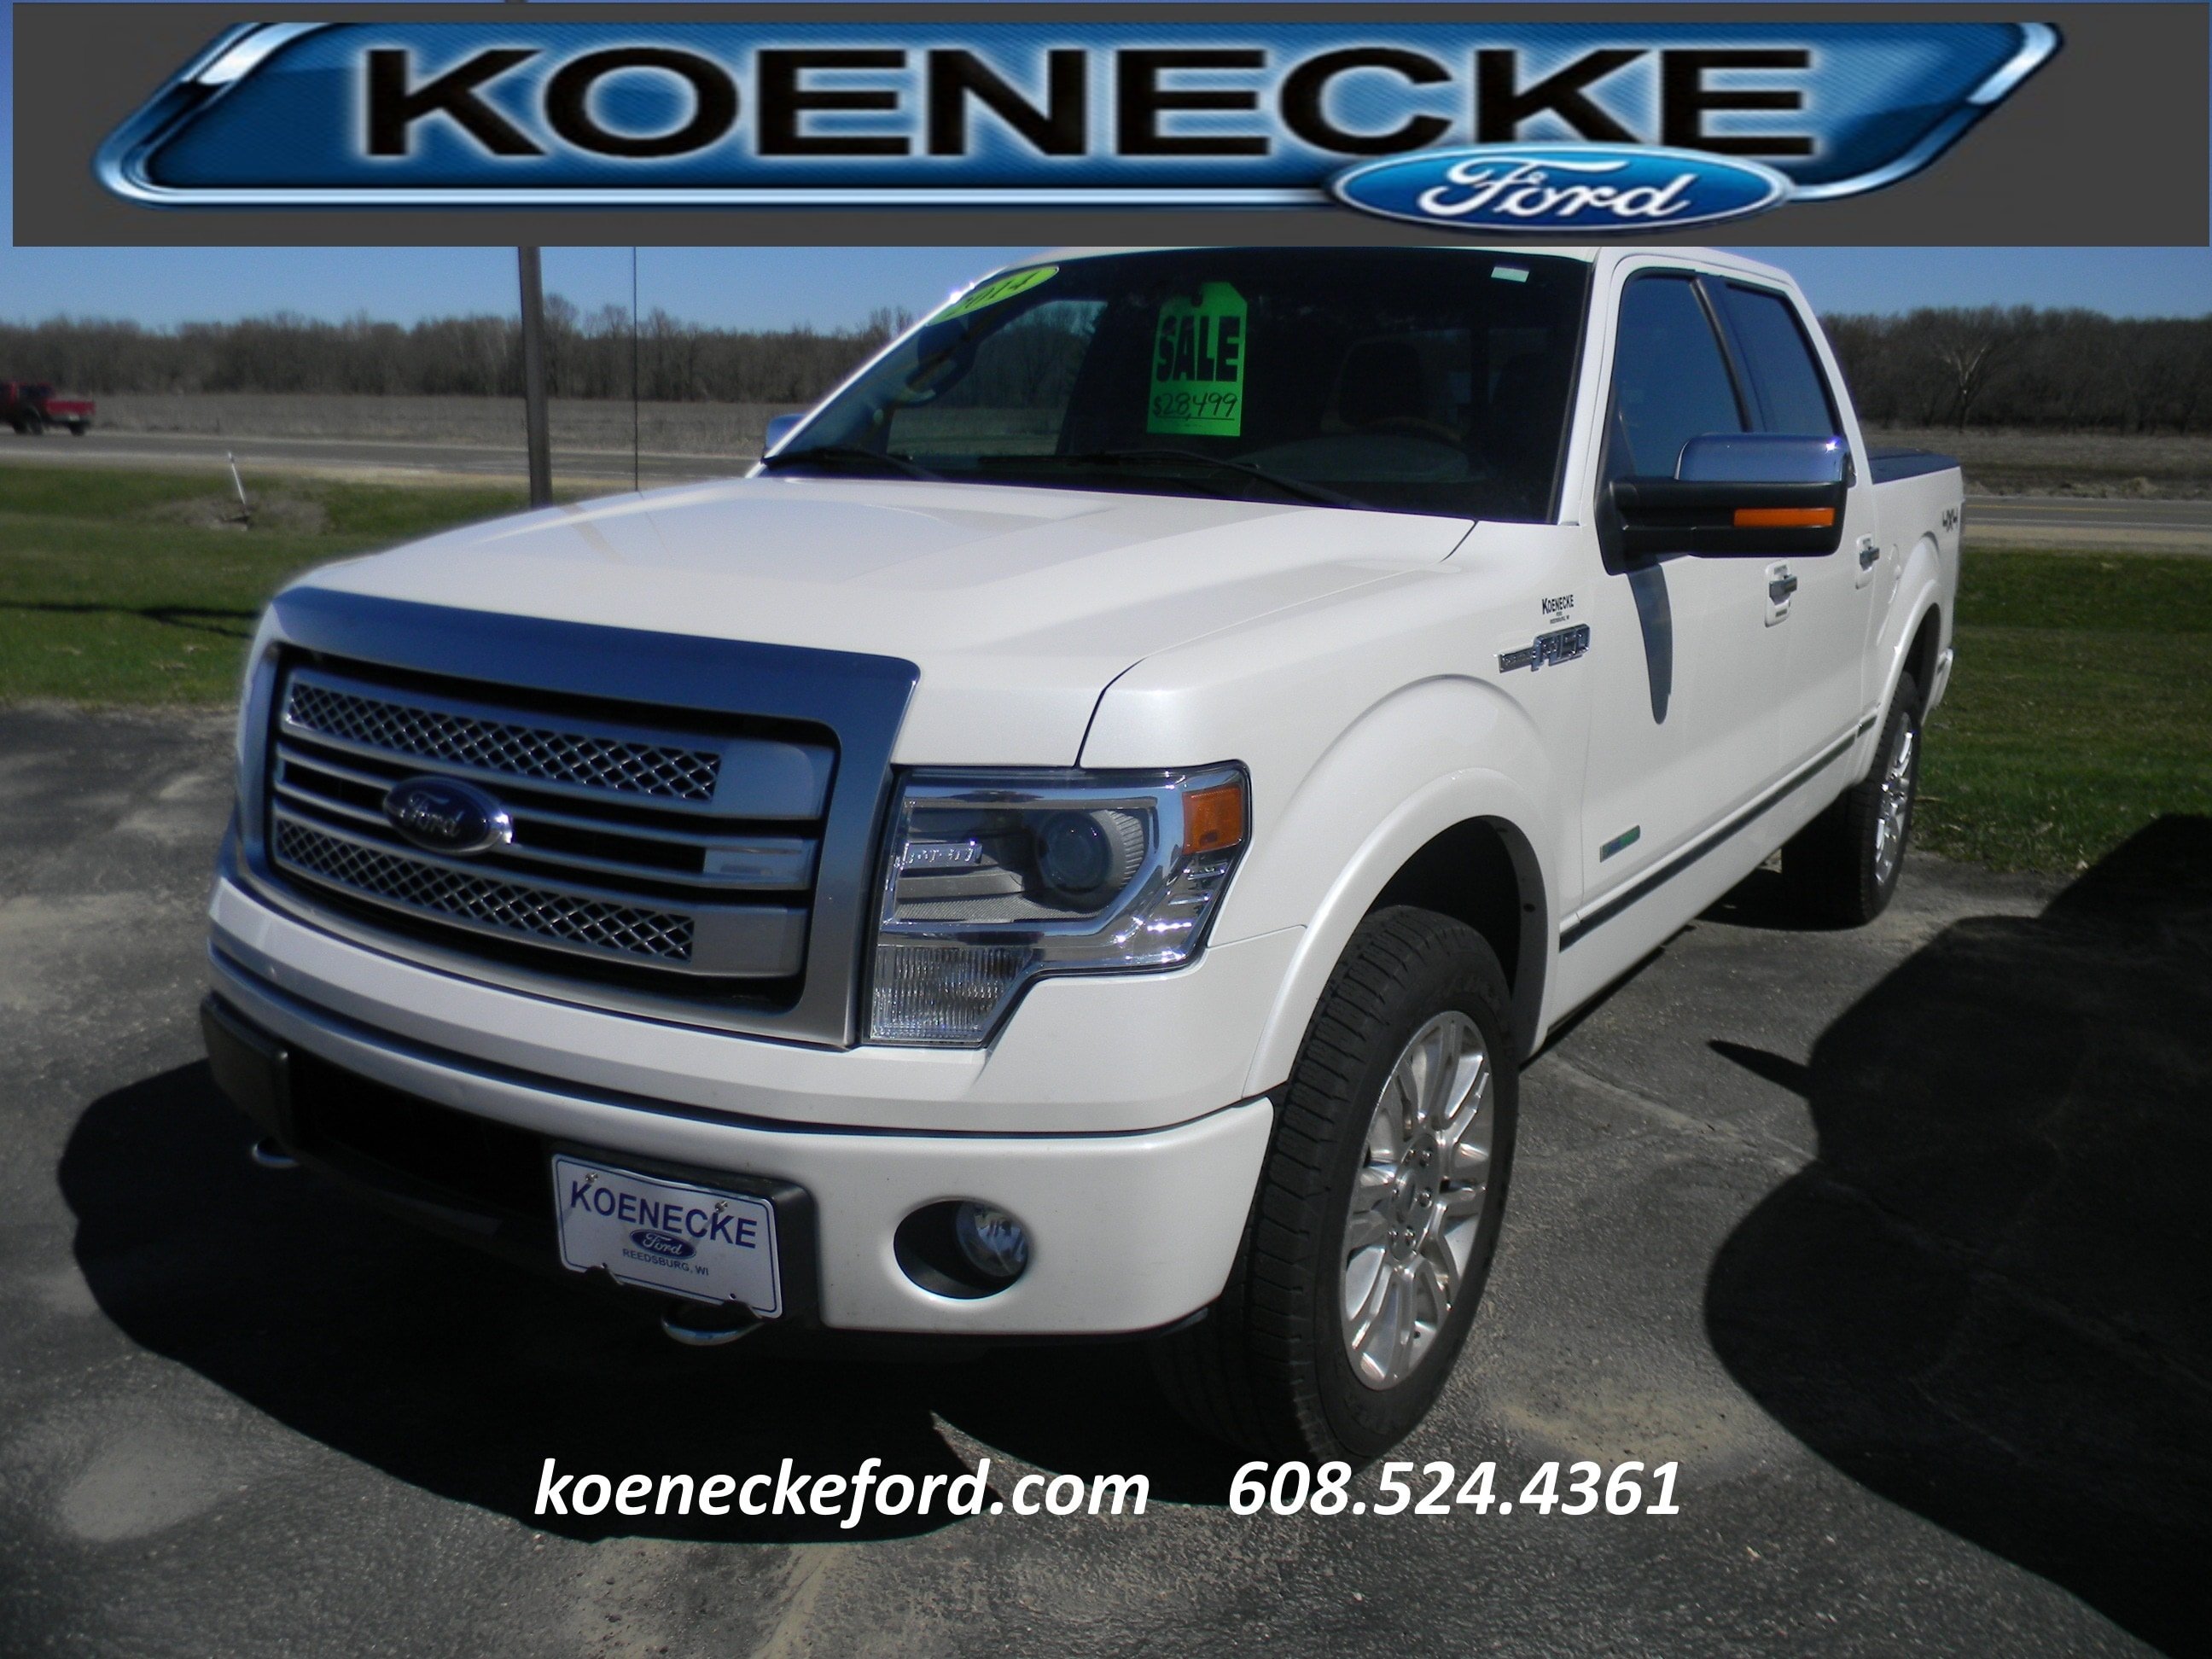 2014 Ford F-150 Platinum 4x4 SuperCrew Cab Styleside 6.5 ft. box 1 Truck